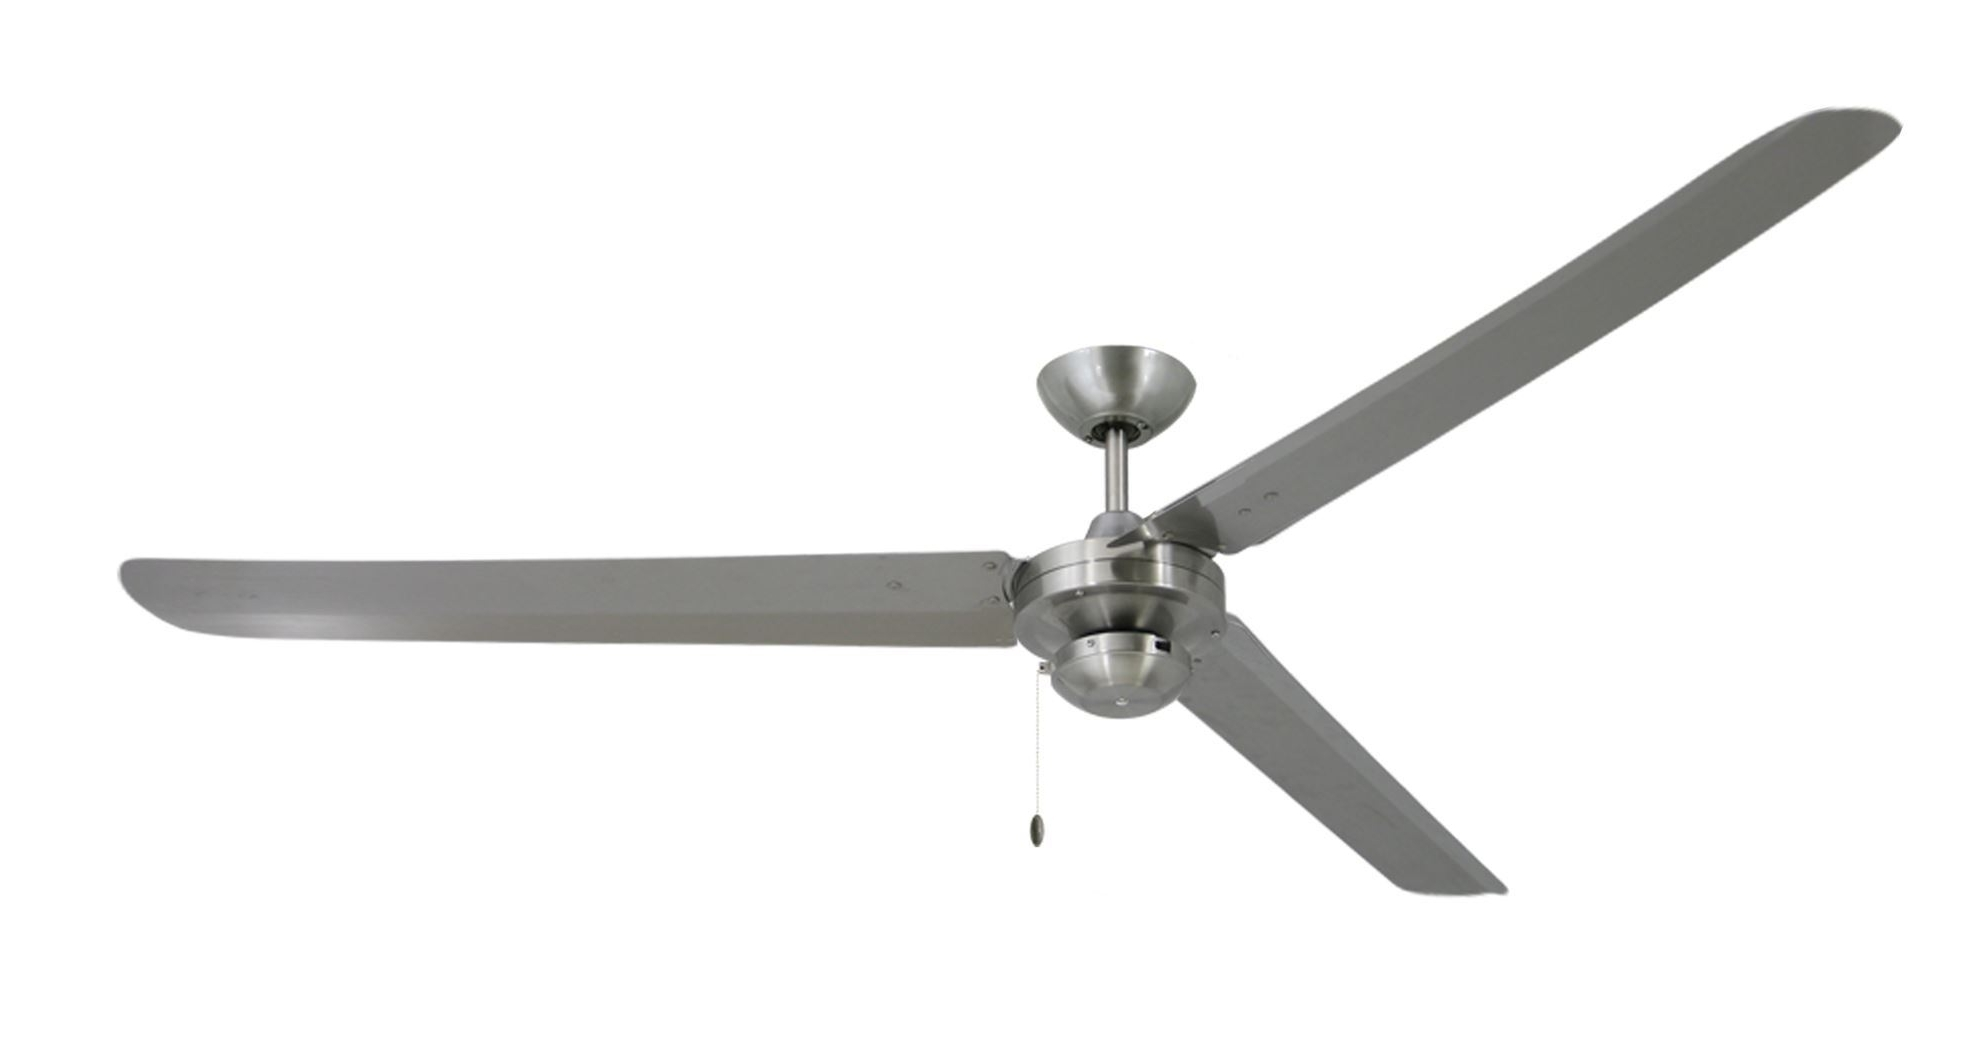 Well Known 72 Inch Outdoor Ceiling Fans With Light Within Tornado 72 In Stainless Steel S316 Industrial Ceiling Fan (View 18 of 20)